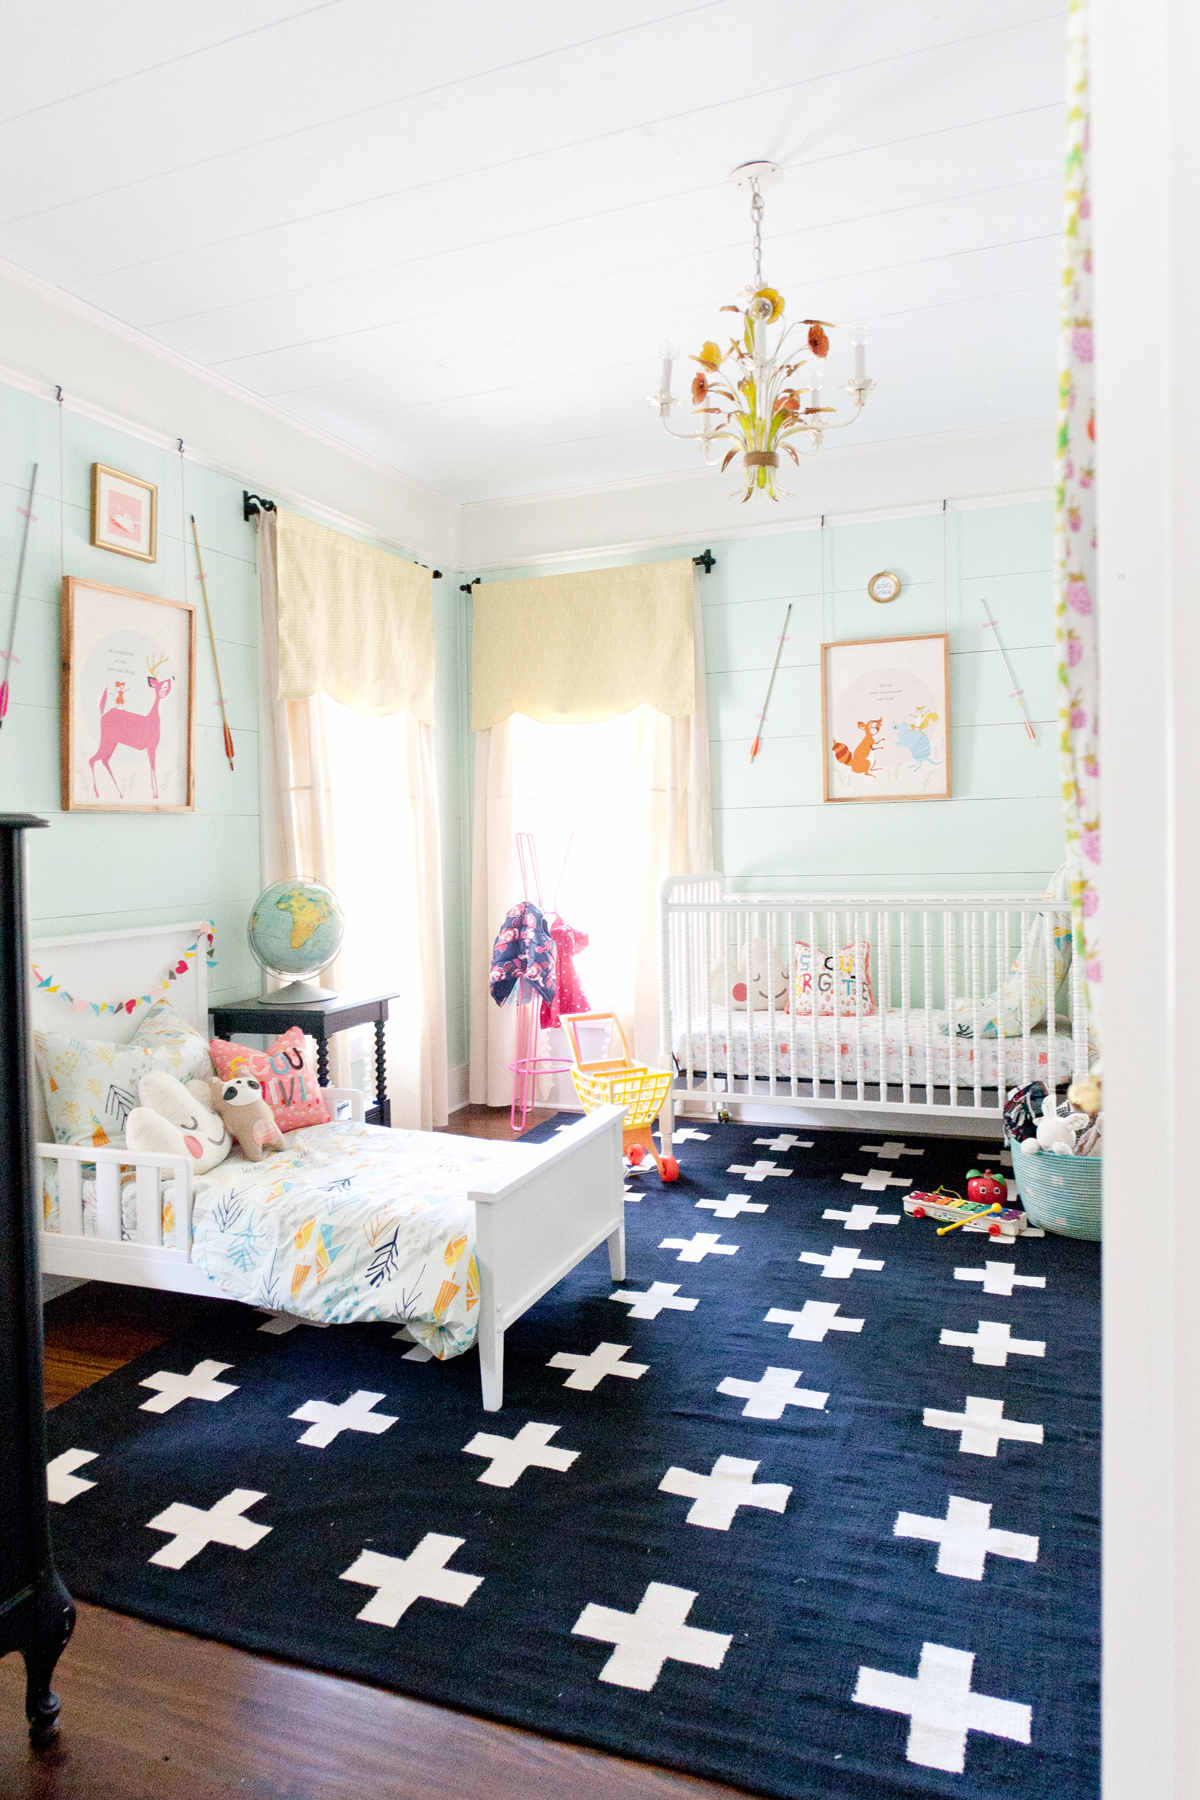 Shared room inspiration lay baby lay lay baby lay Cute kid room ideas